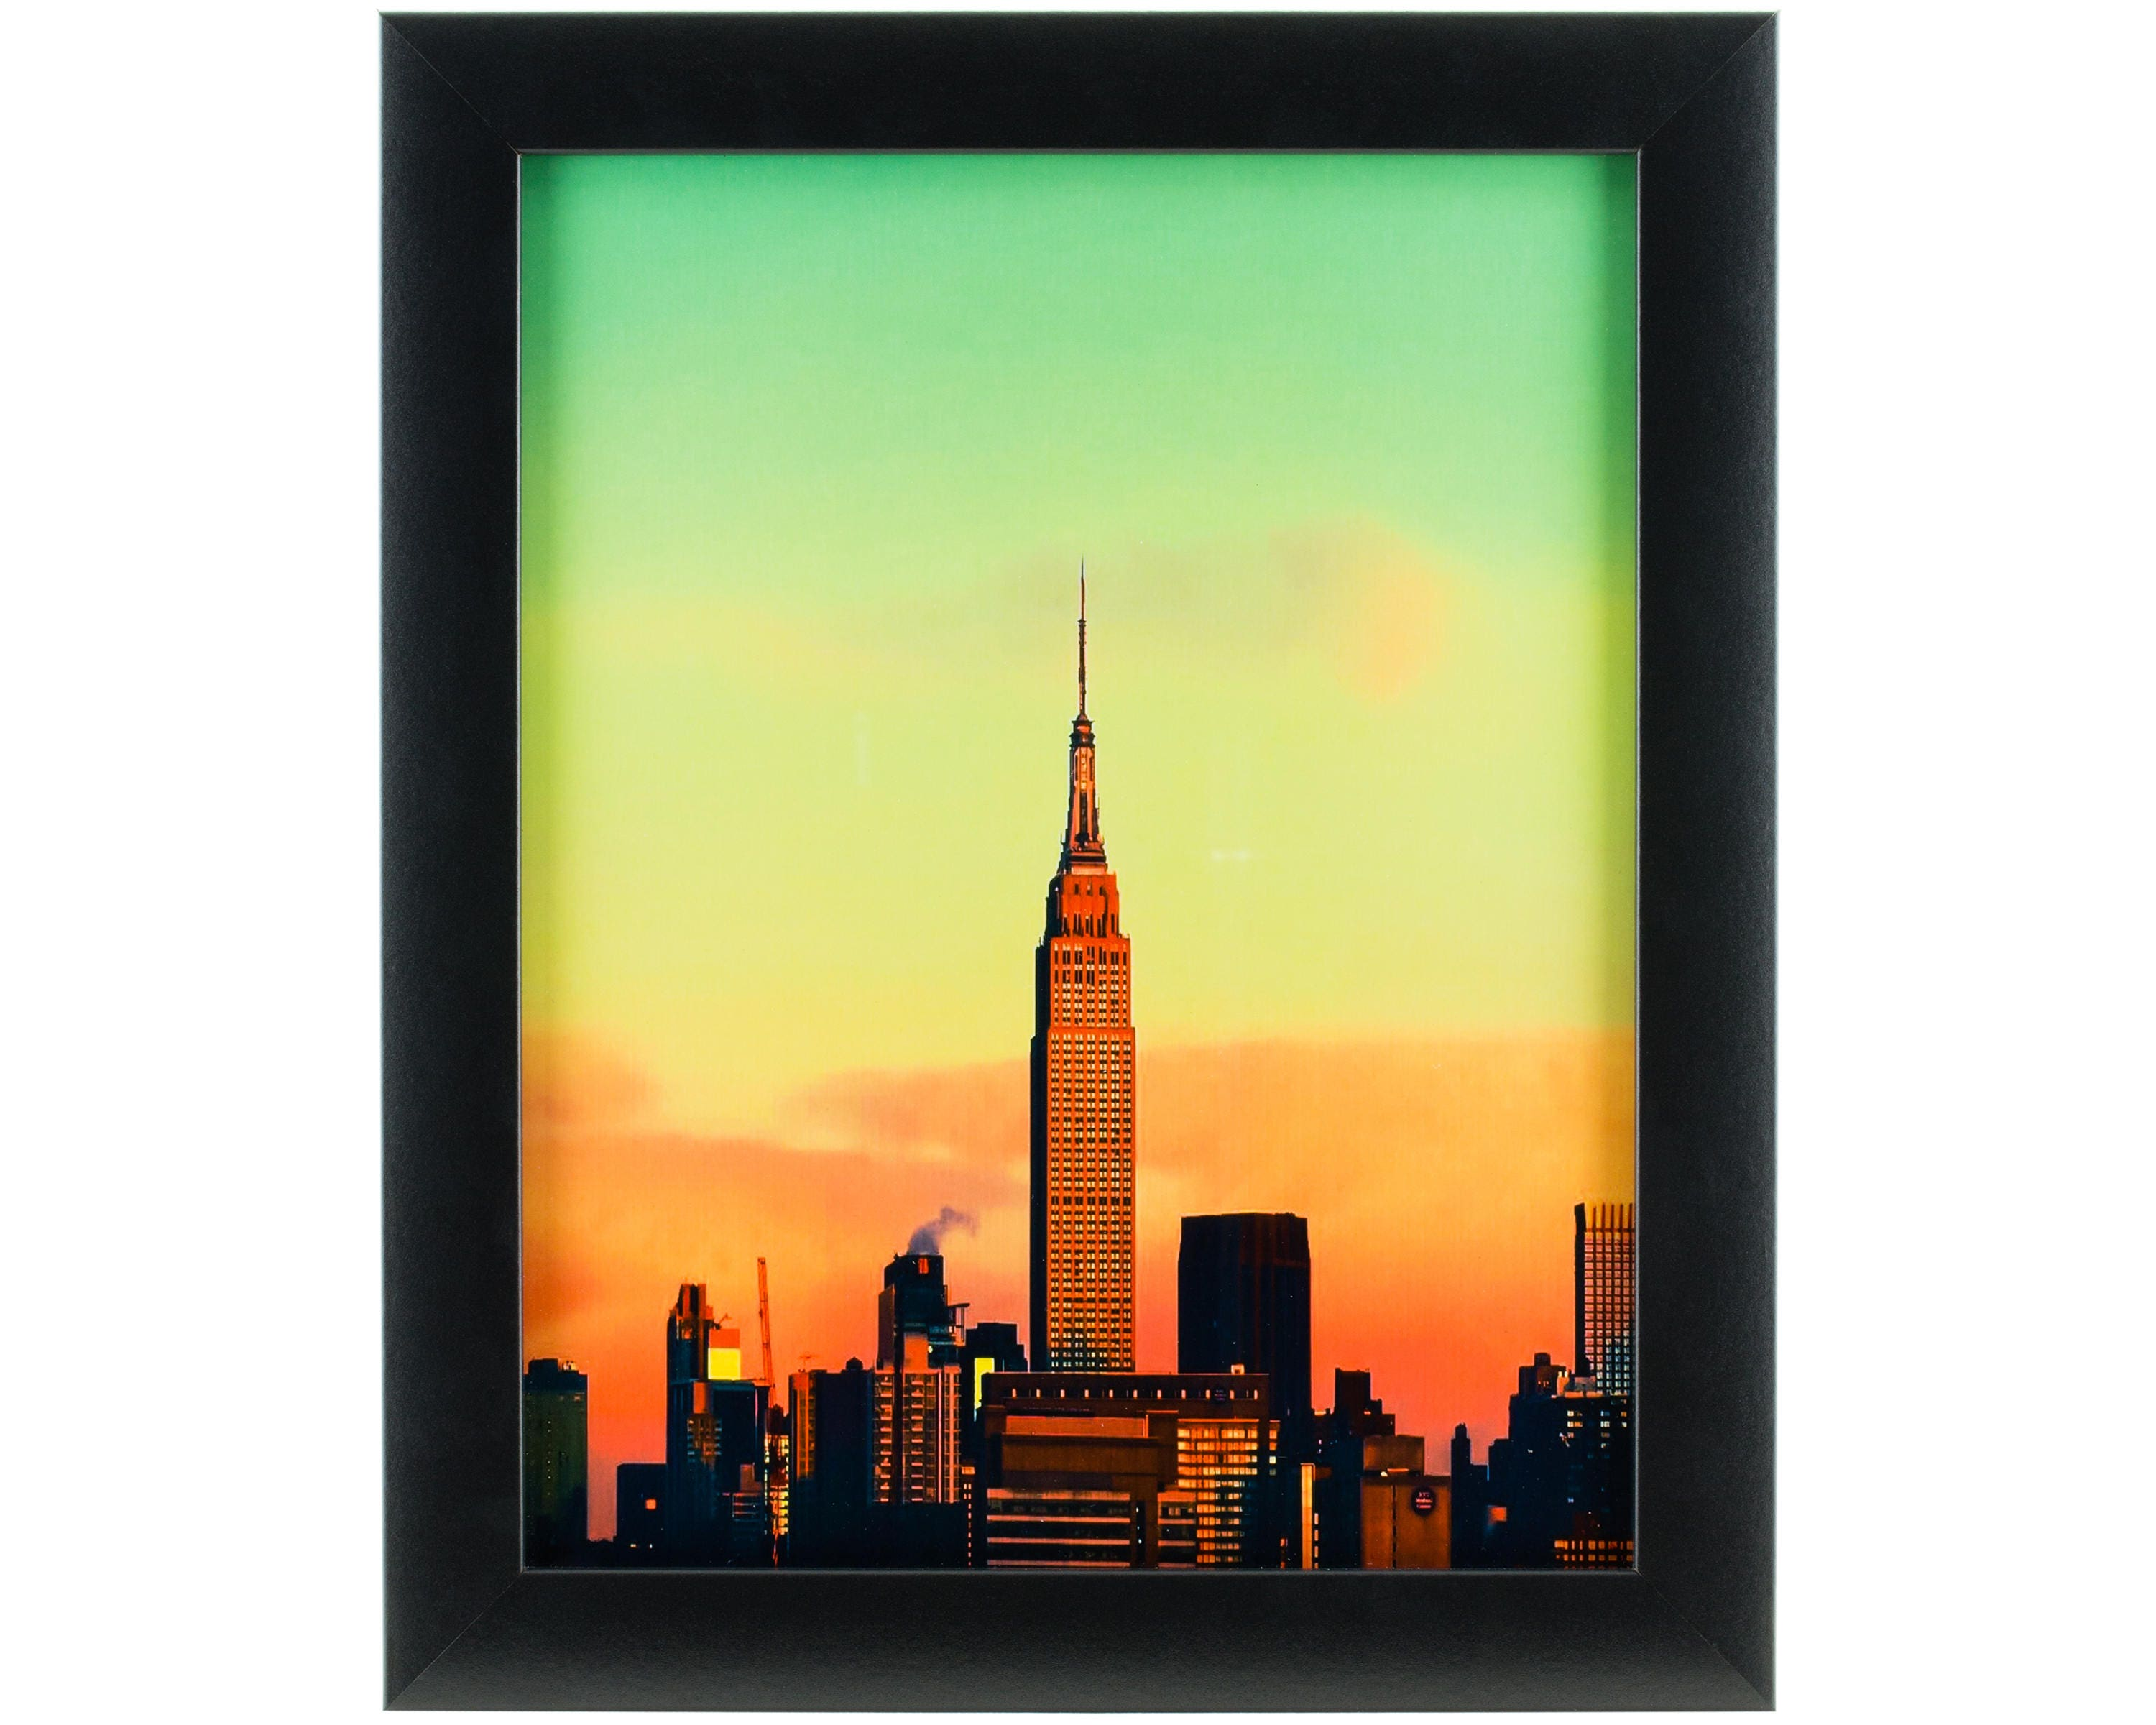 Craig frames 6x6 inch modern black picture frame for Modern house 6x6